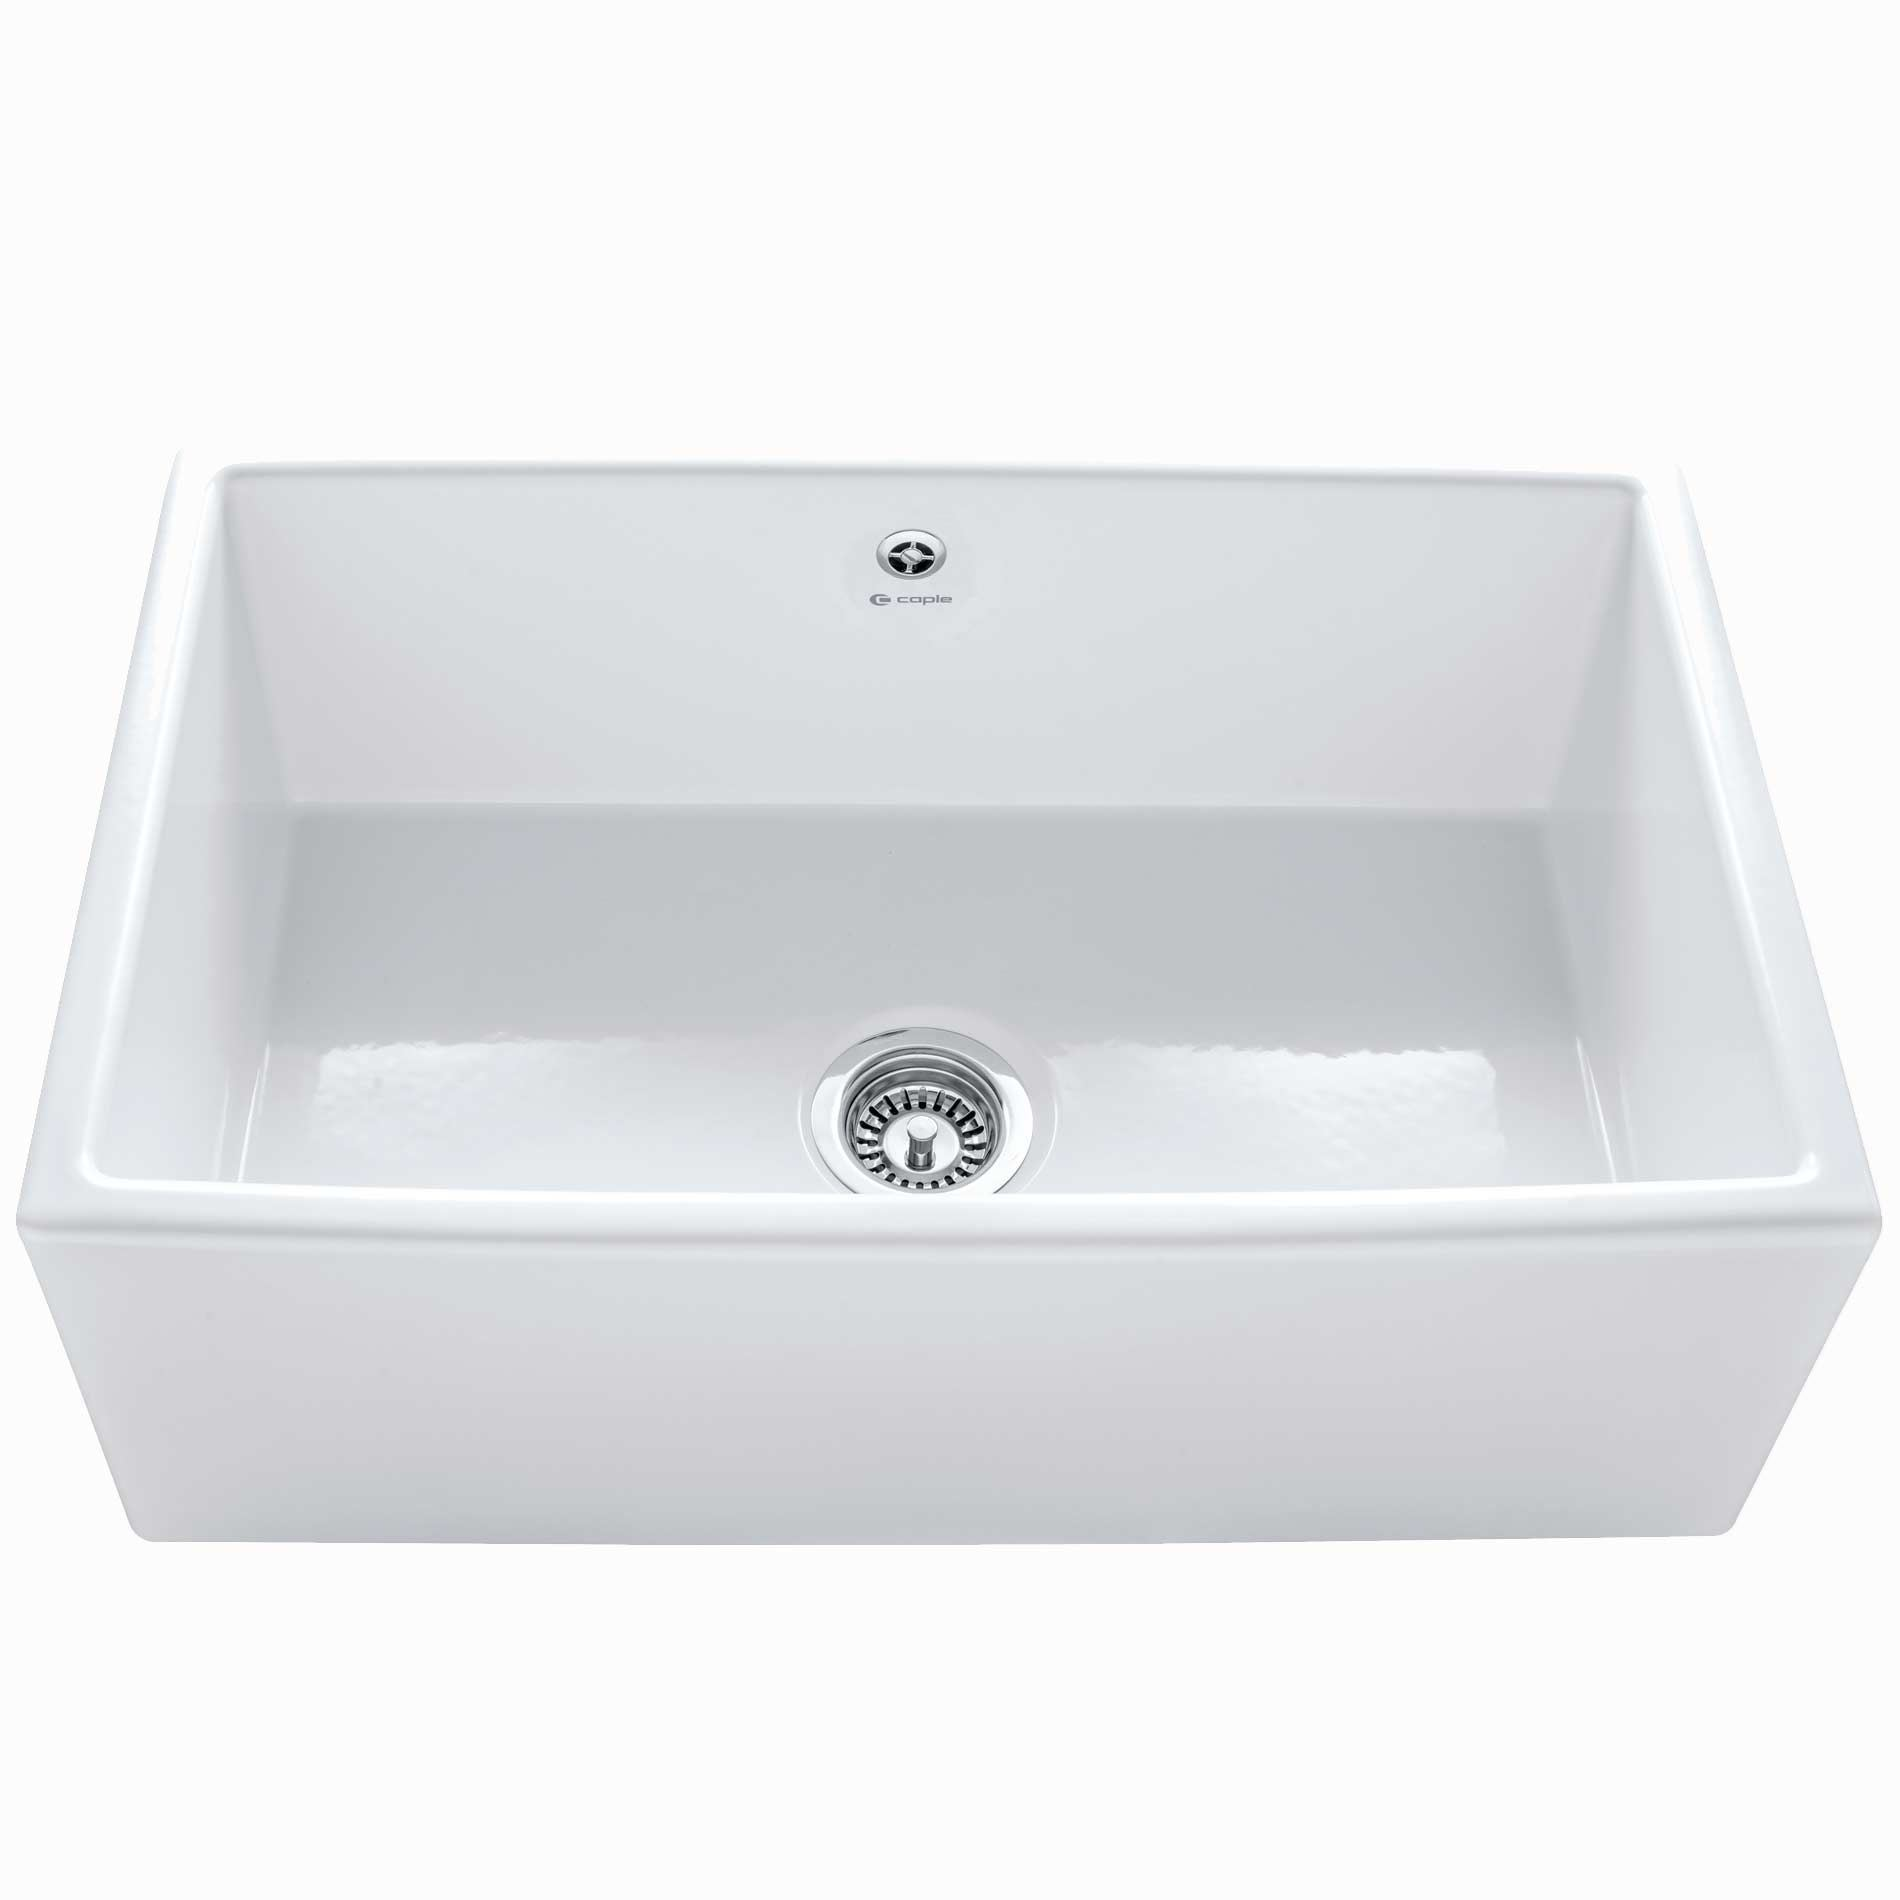 Caple Farmhouse 762 Ceramic Sink Kitchen Sinks & Taps